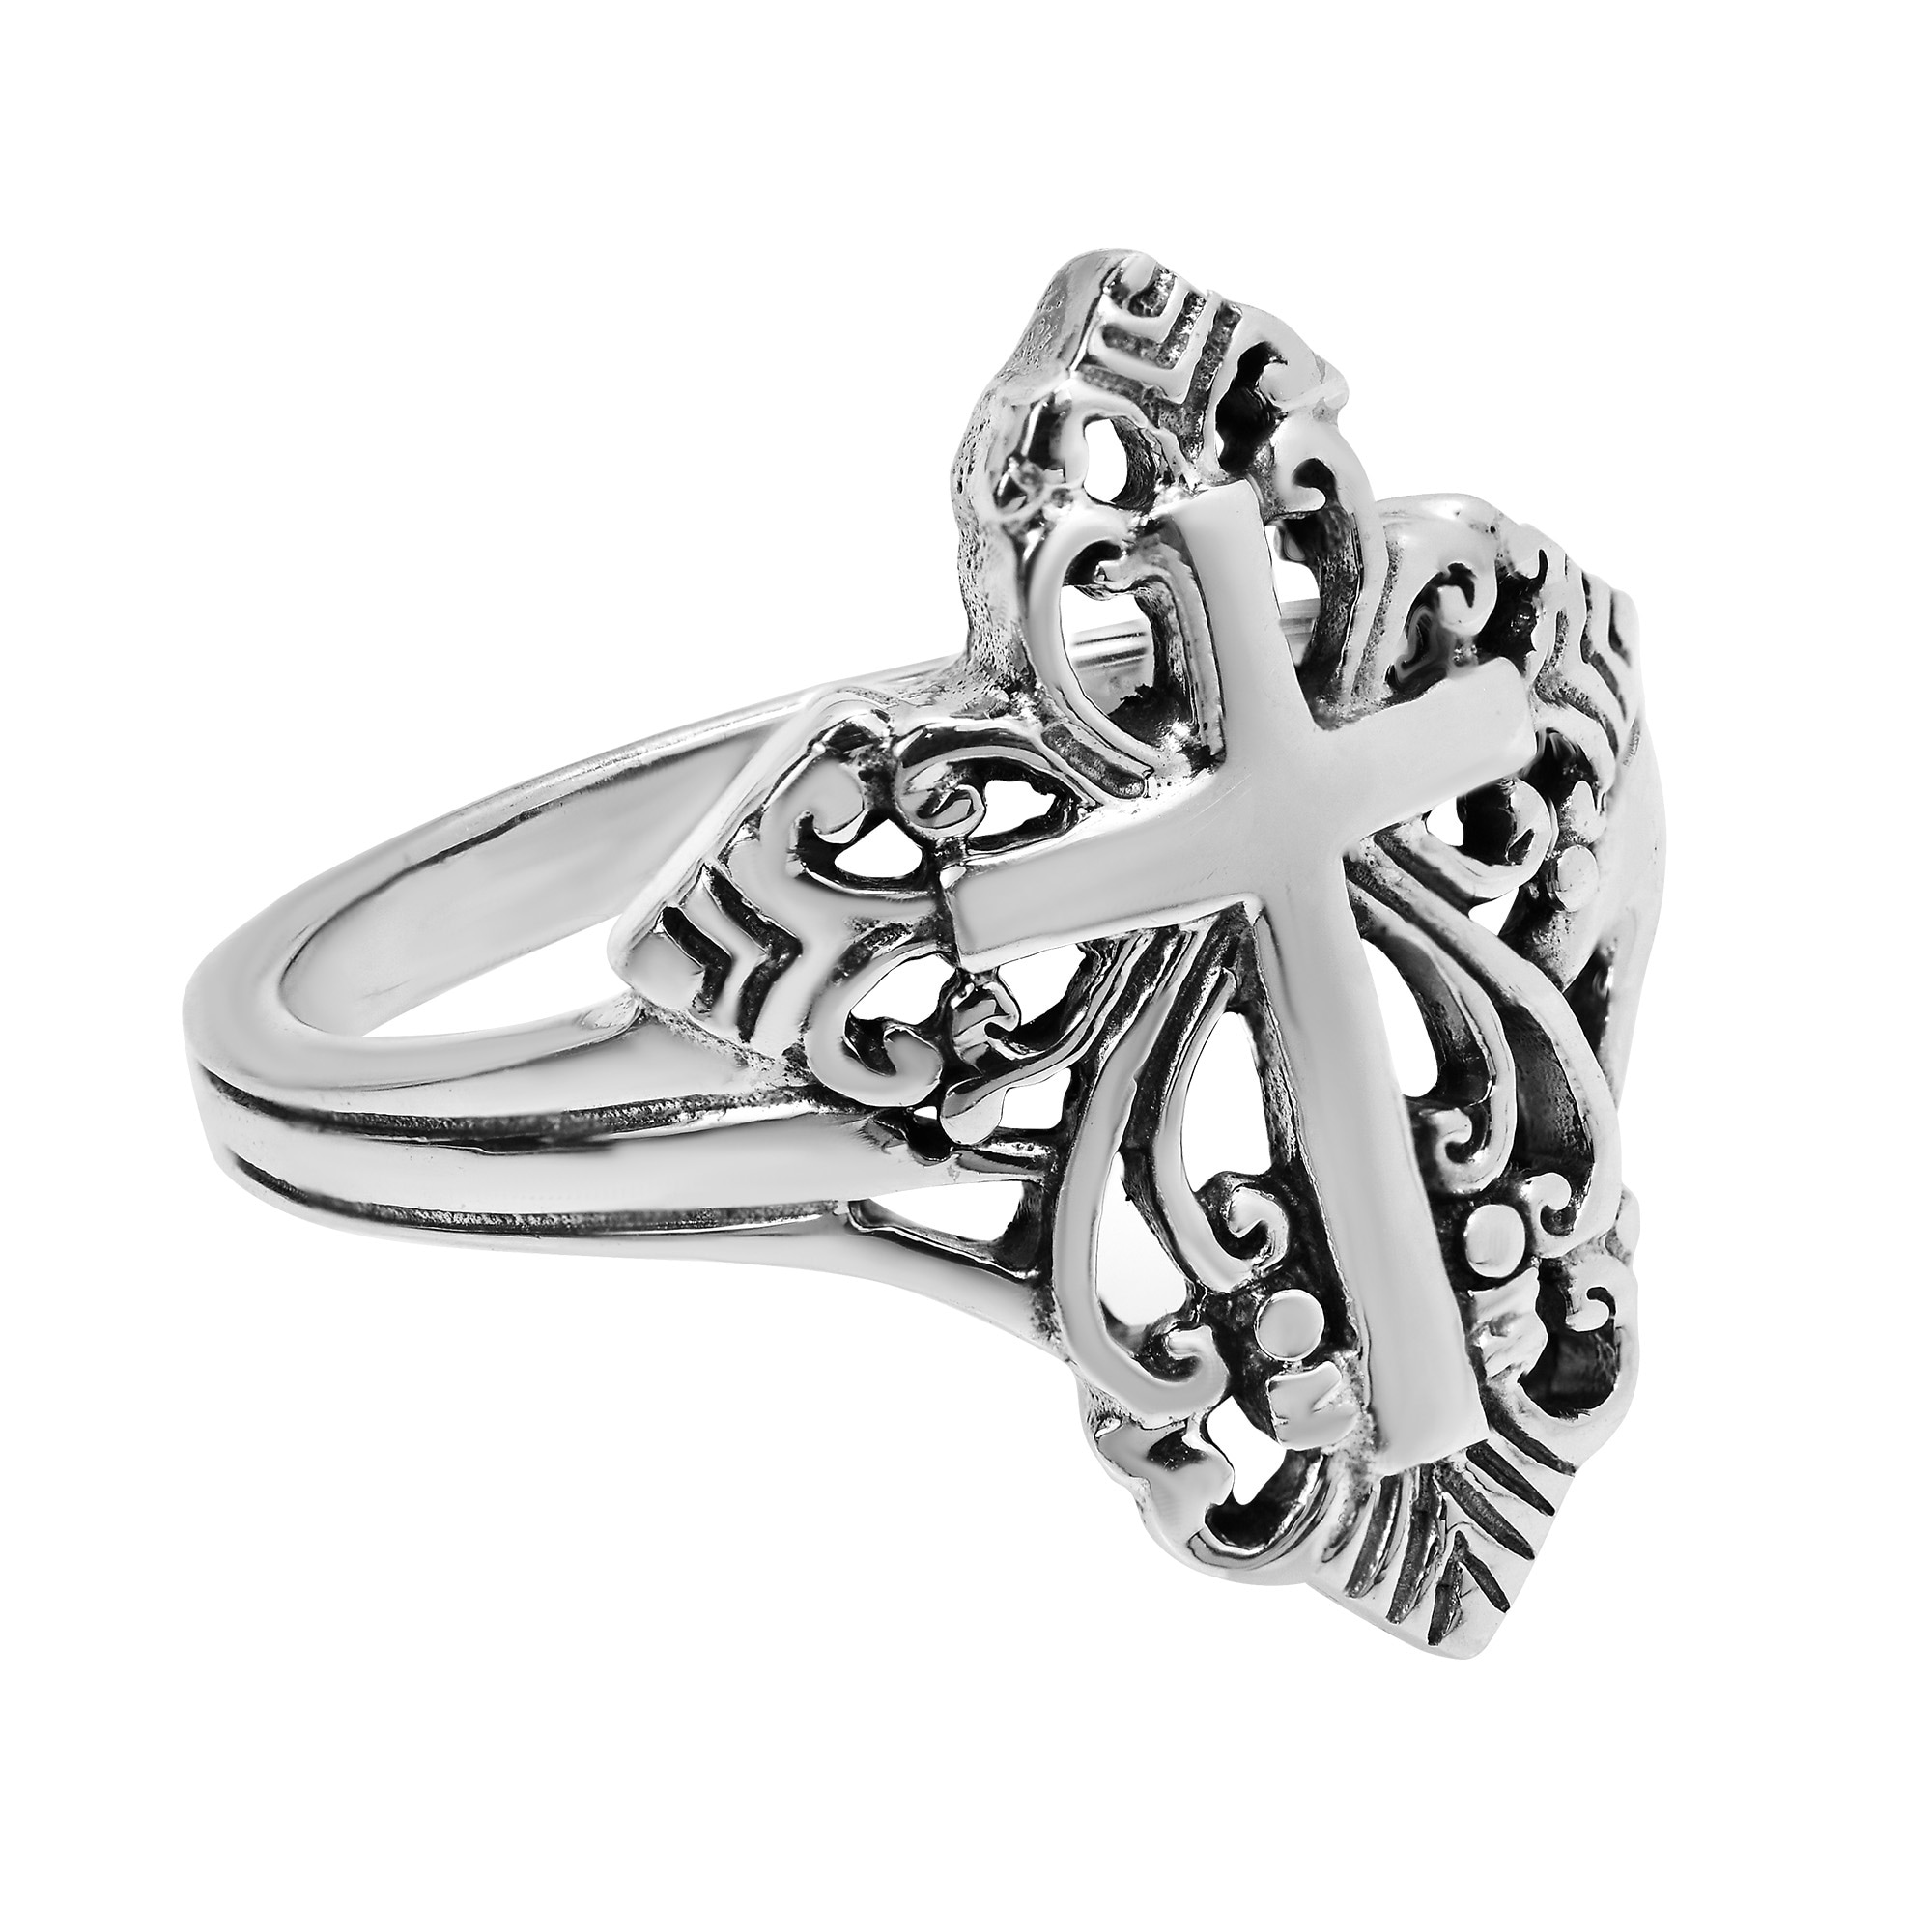 art topic engagement filigree me your wedding rings ring decofiligree ringswedding deco bands show